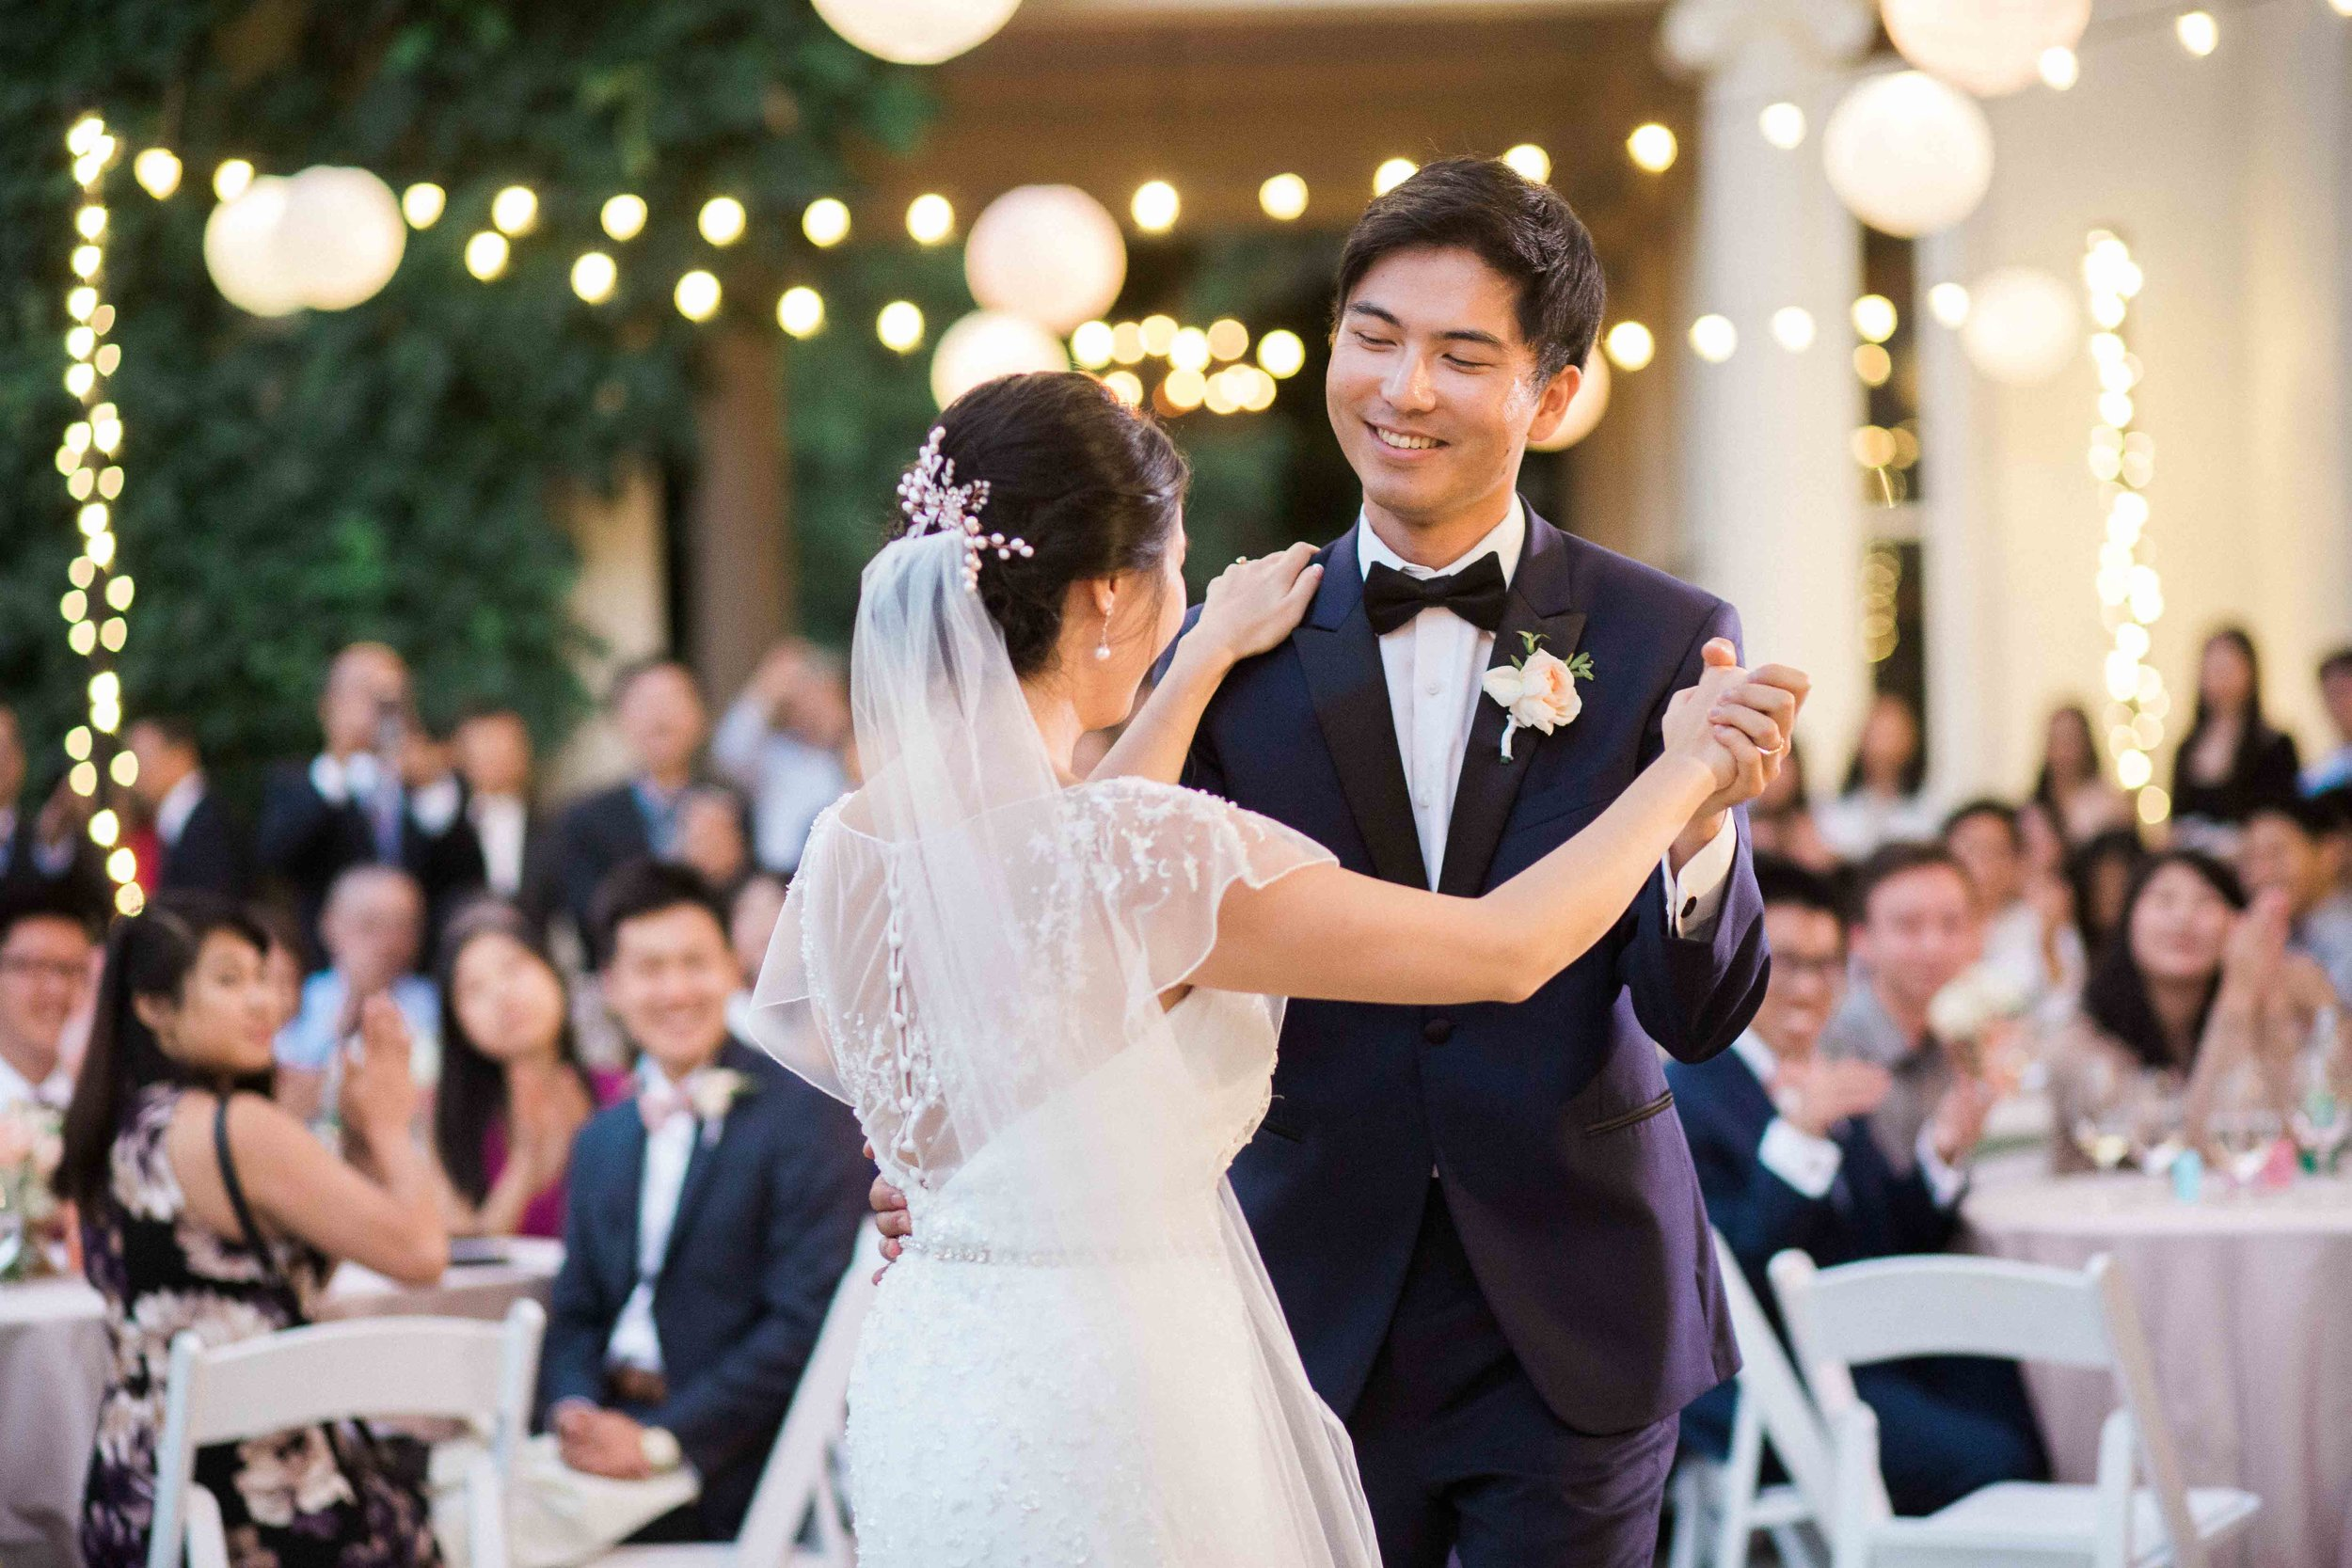 Villa_Montalvo_Wedding_Photographer_Videographer_San_Francisco183.jpg